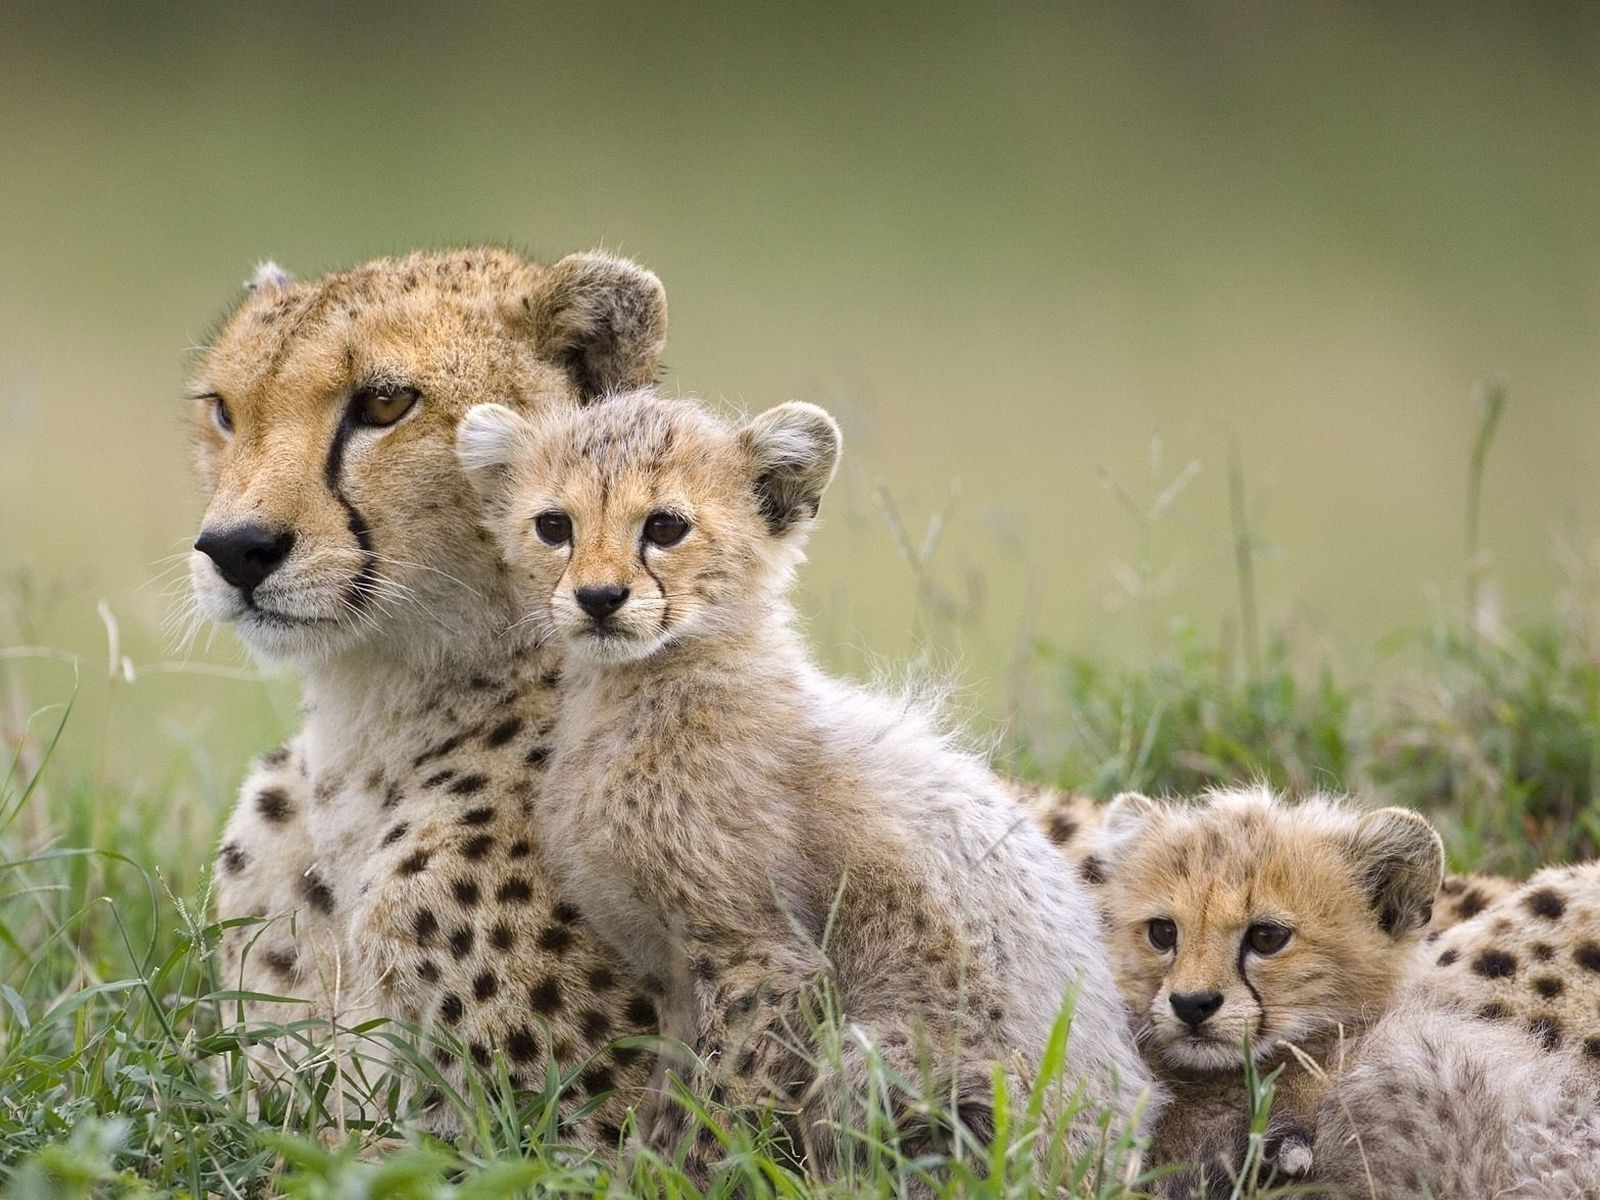 Collection Of Cute Cheetah Wallpaper On Hdwallpapers 1920 1080 Baby Cheetah Wallpapers 45 Wallpapers Adora Cheetah Pictures Cheetah Wallpaper Baby Cheetahs